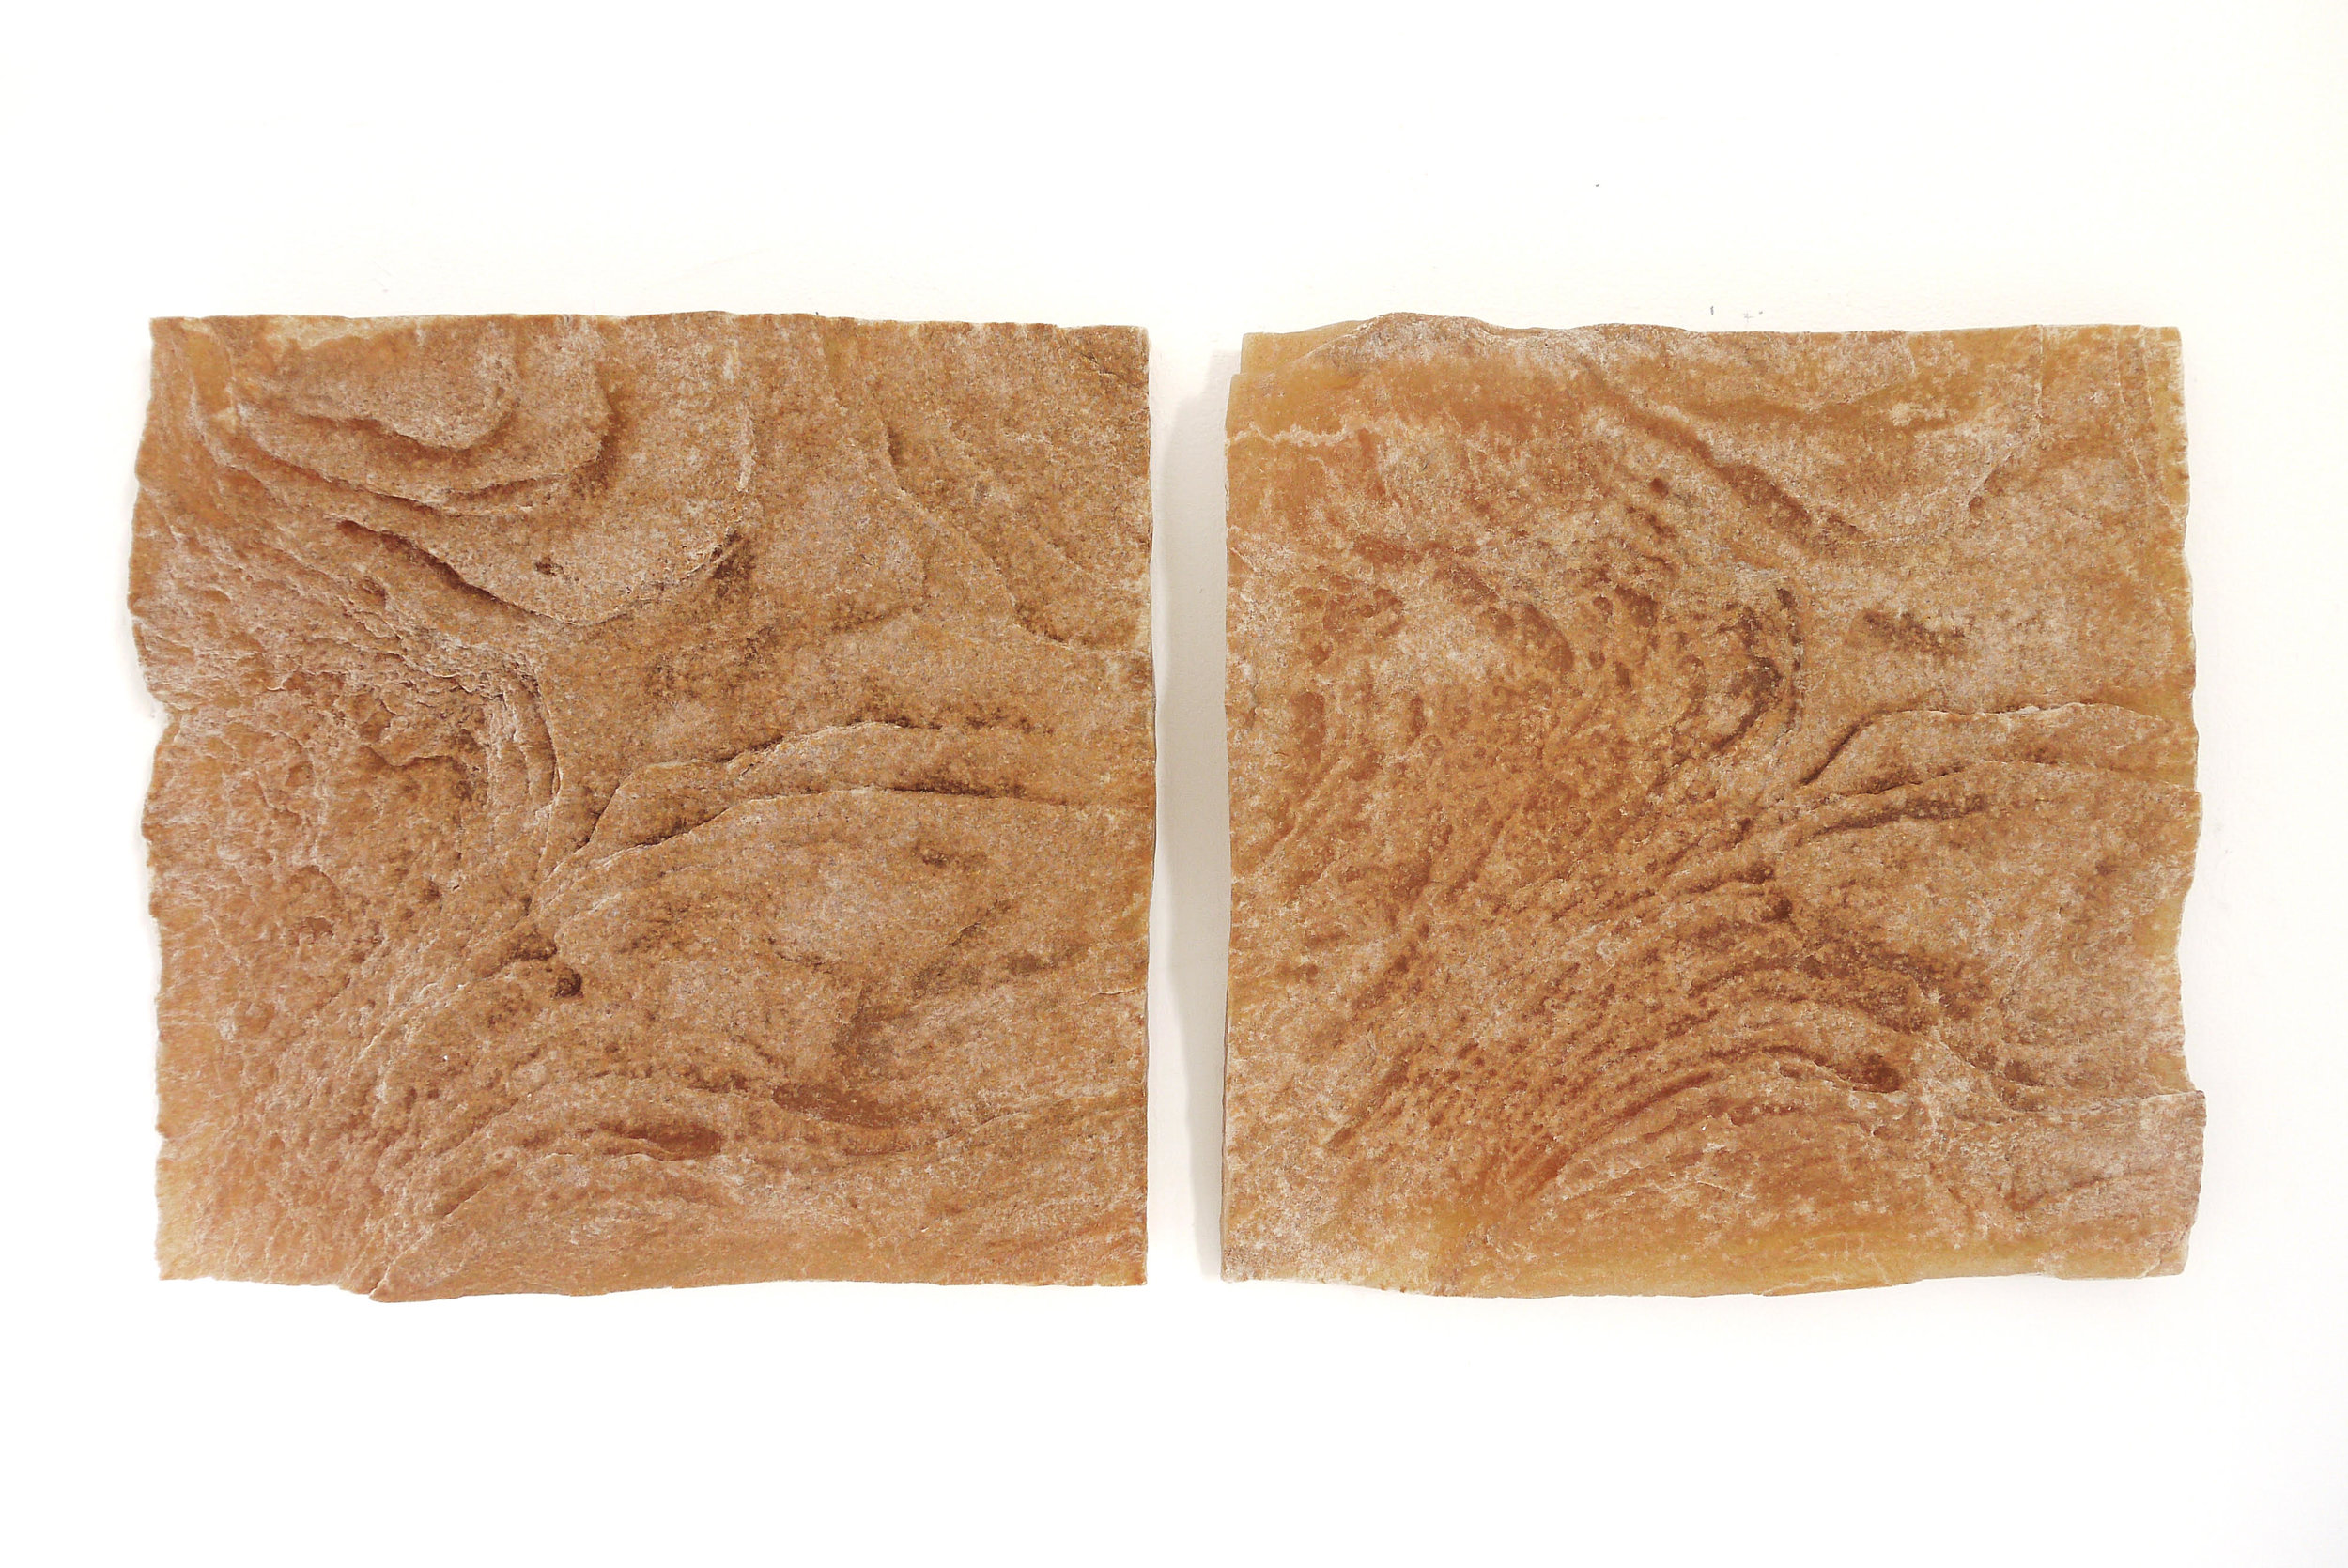 AMoCA Collection    Embedded Pair (dried micaceous clay) resin, clay, 12x12x2, 2018